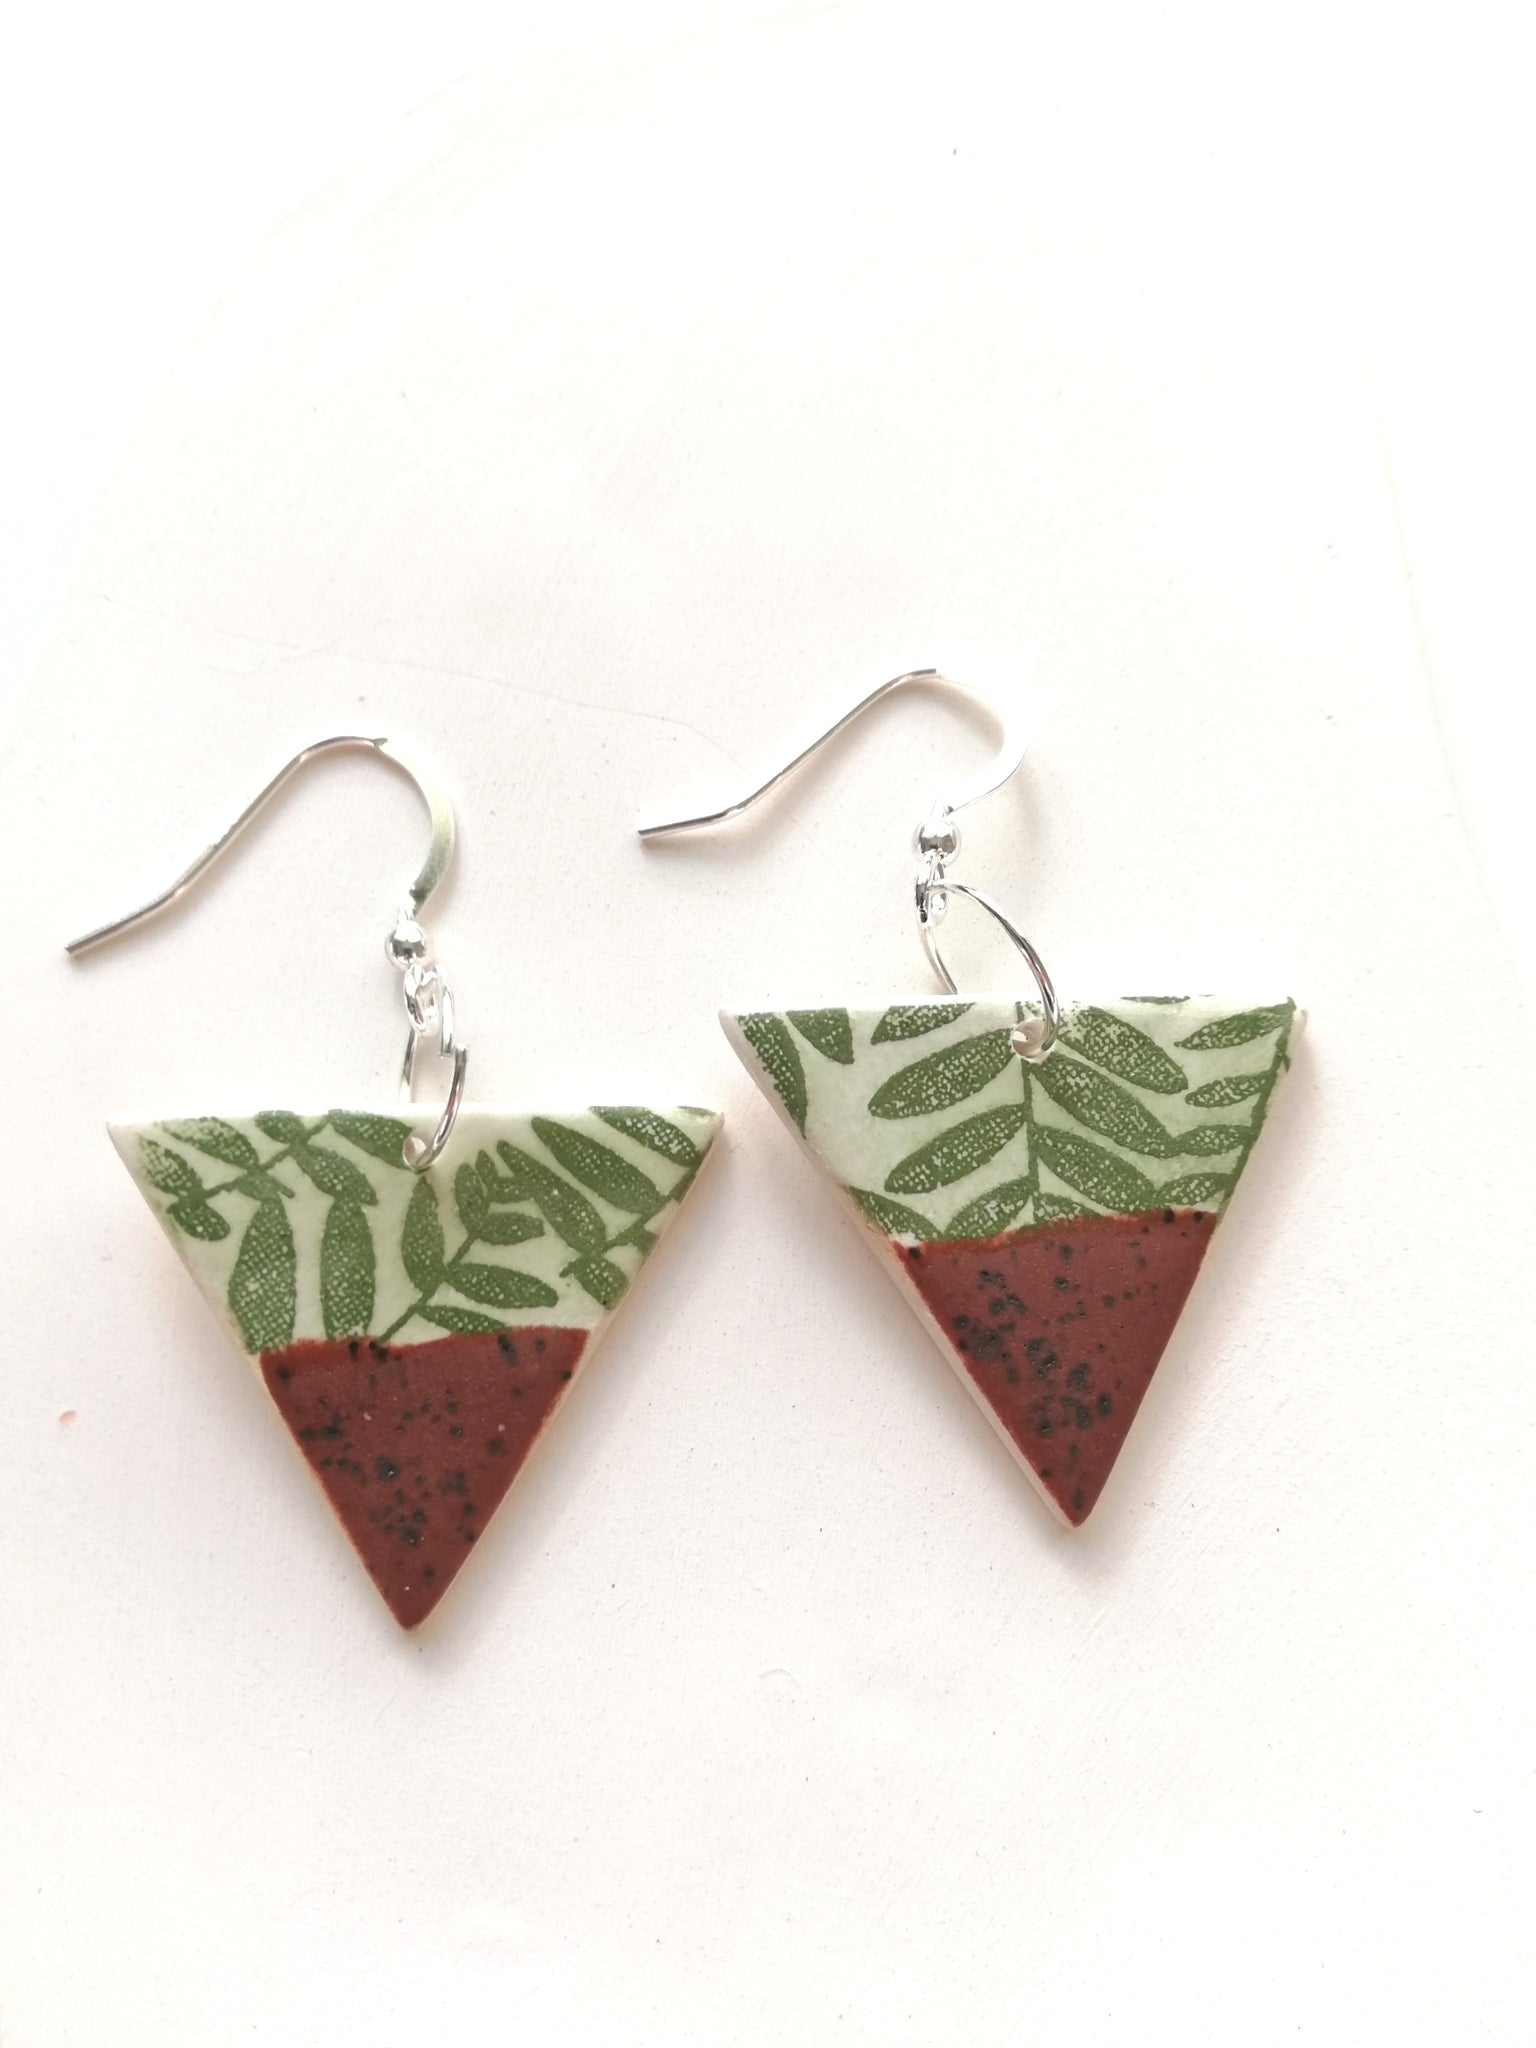 Triangular Drop Earring - Speckled Matt Brown with Green Plant Print